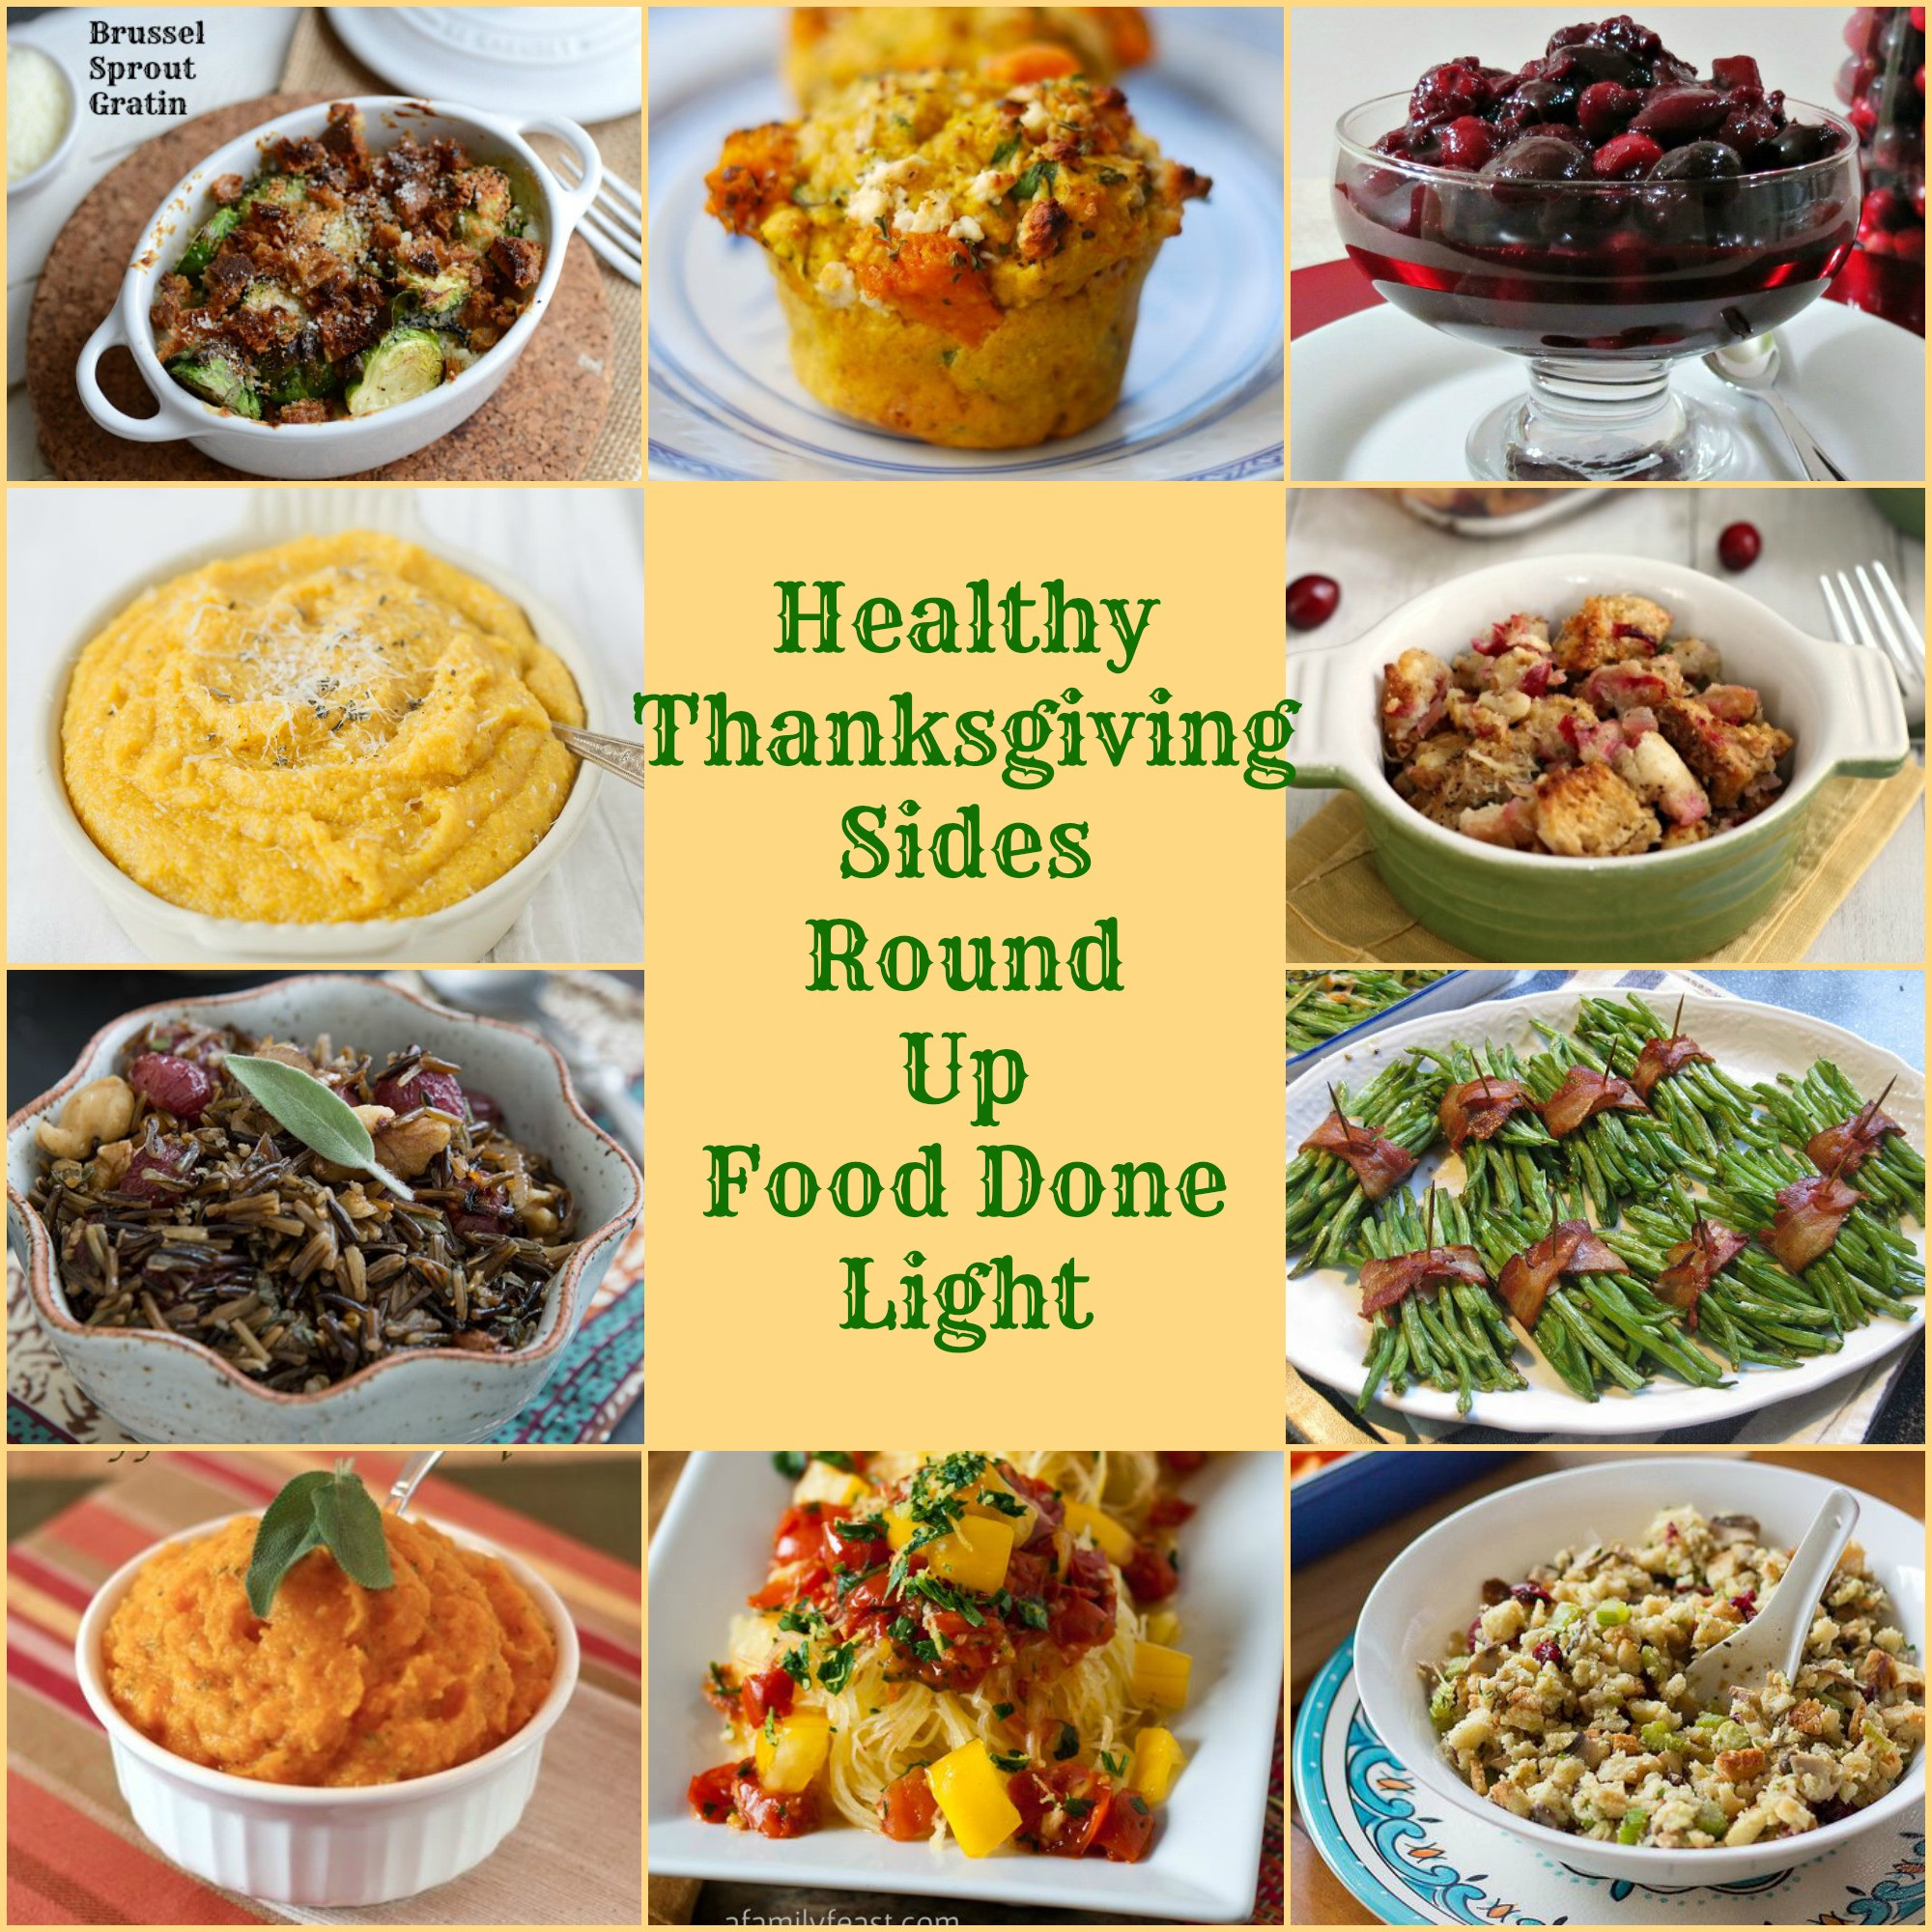 Healthy Side Dishes For Thanksgiving  Healthy Thanksgiving Sides Recipe Round Up Food Done Light